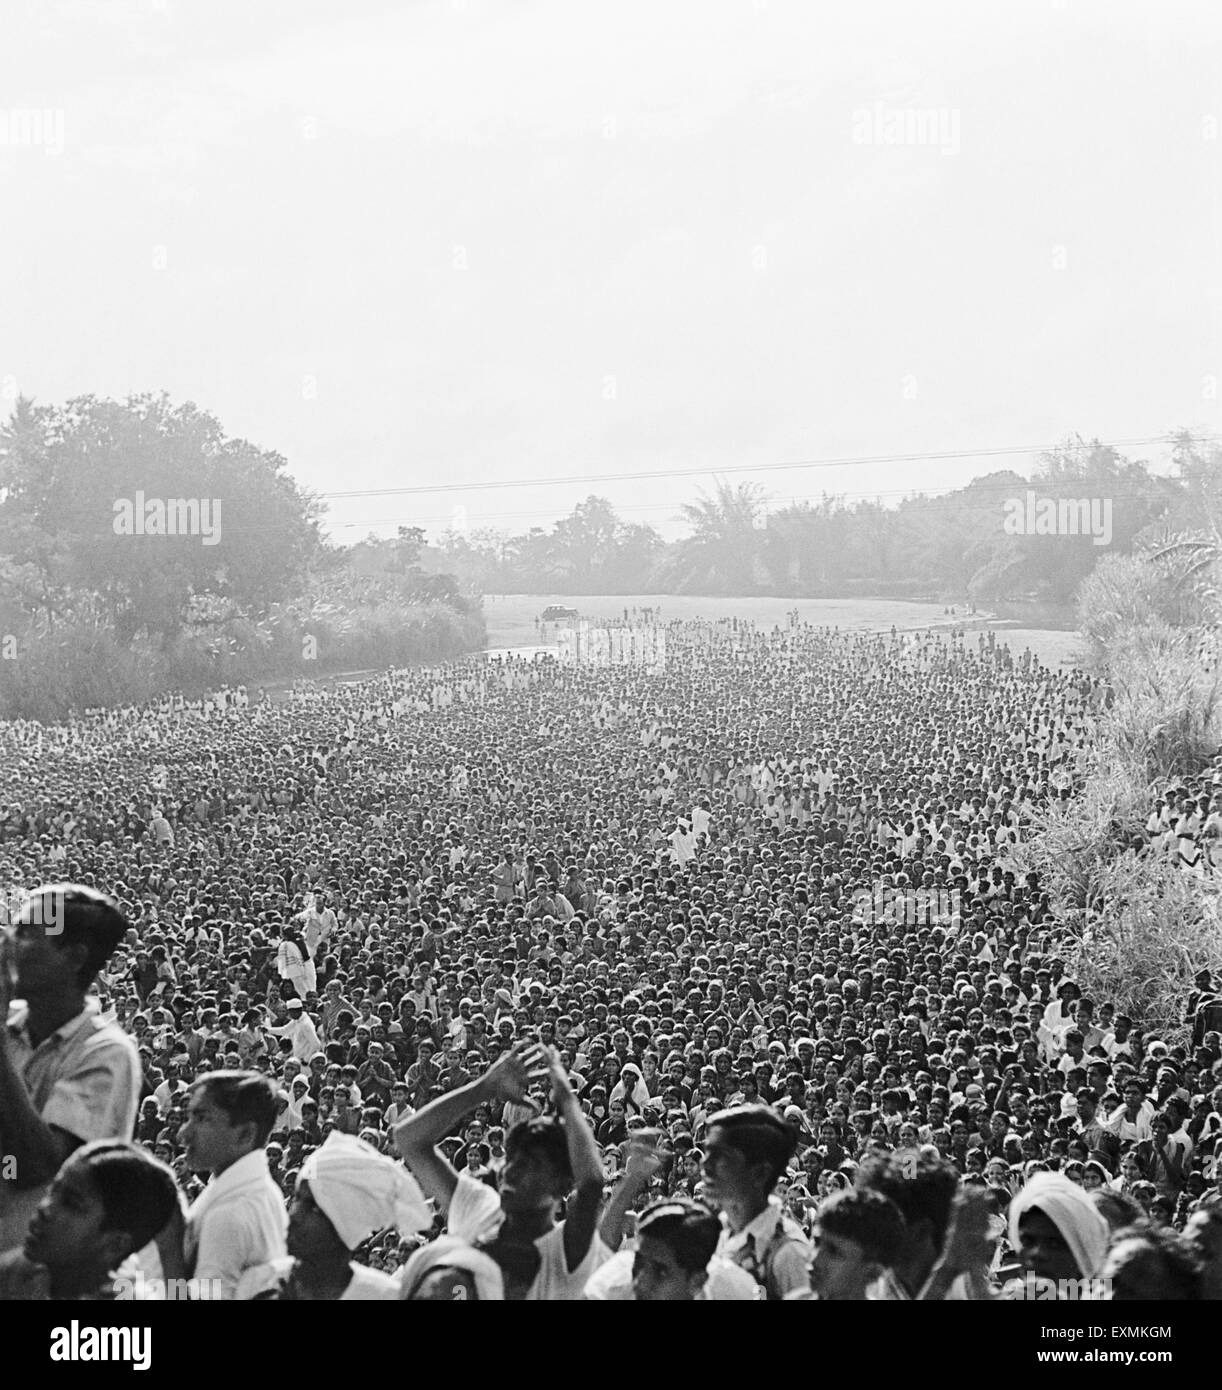 Crowds of people wish to meet Mahatma Gandhi at Madras ; 1946 - Stock Image